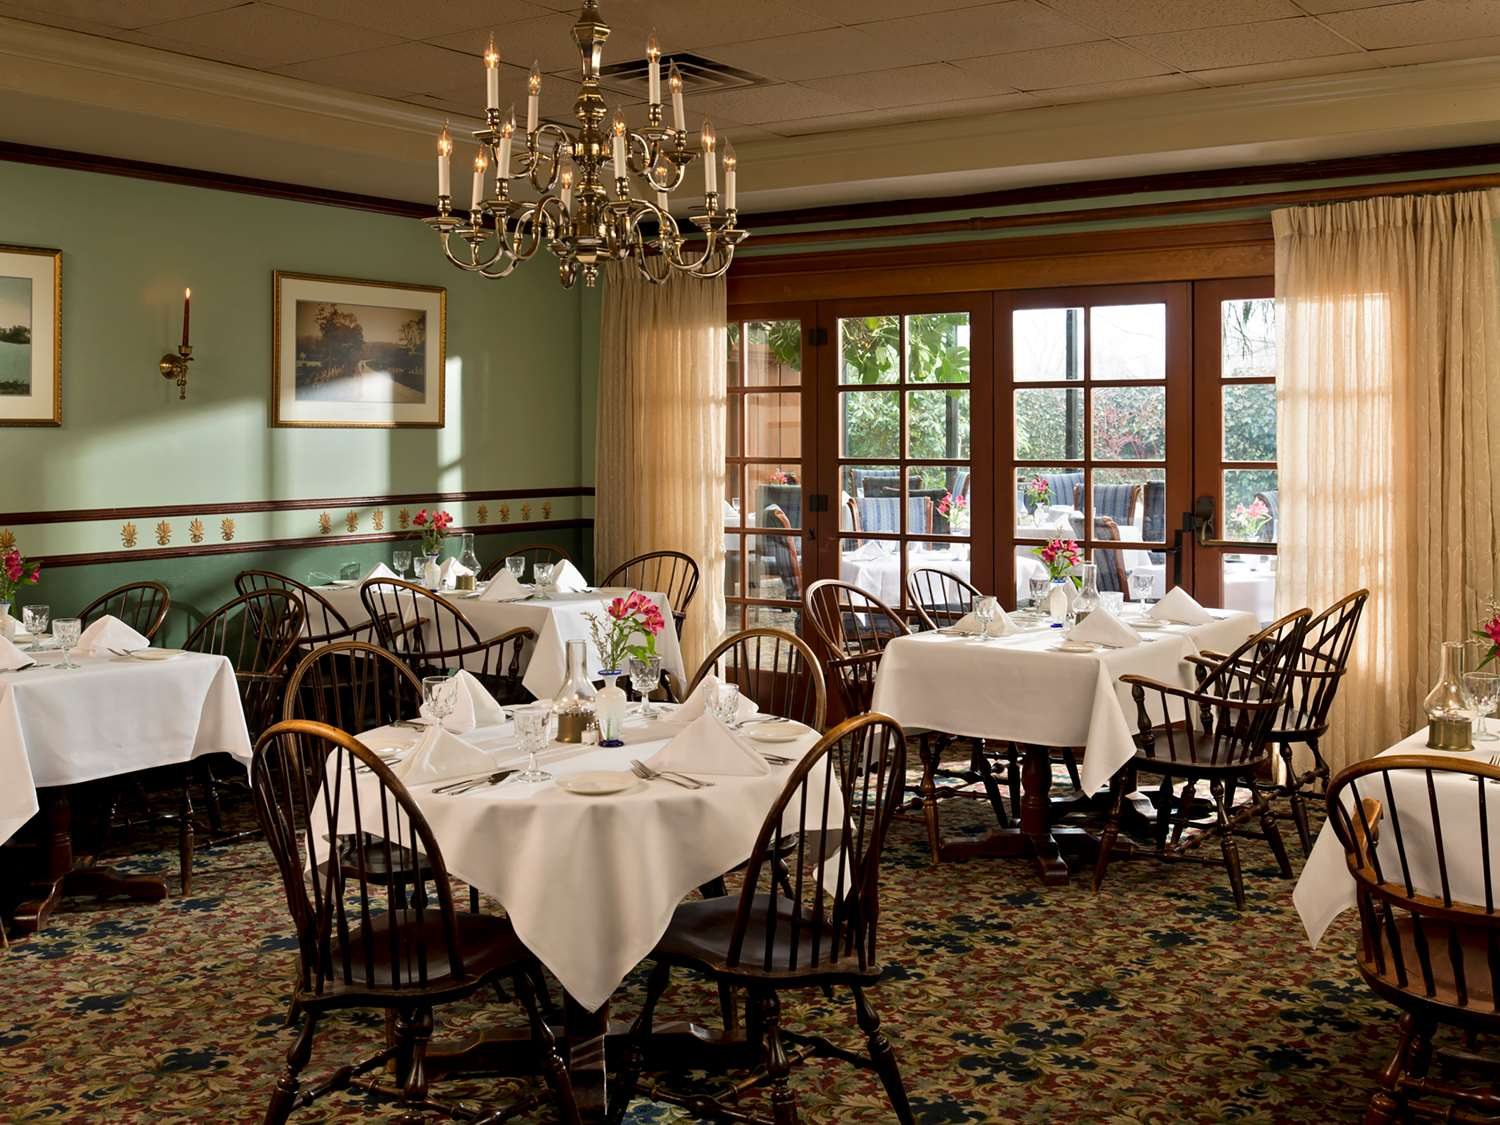 Restaurant - Daniel Webster Inn Sandwich